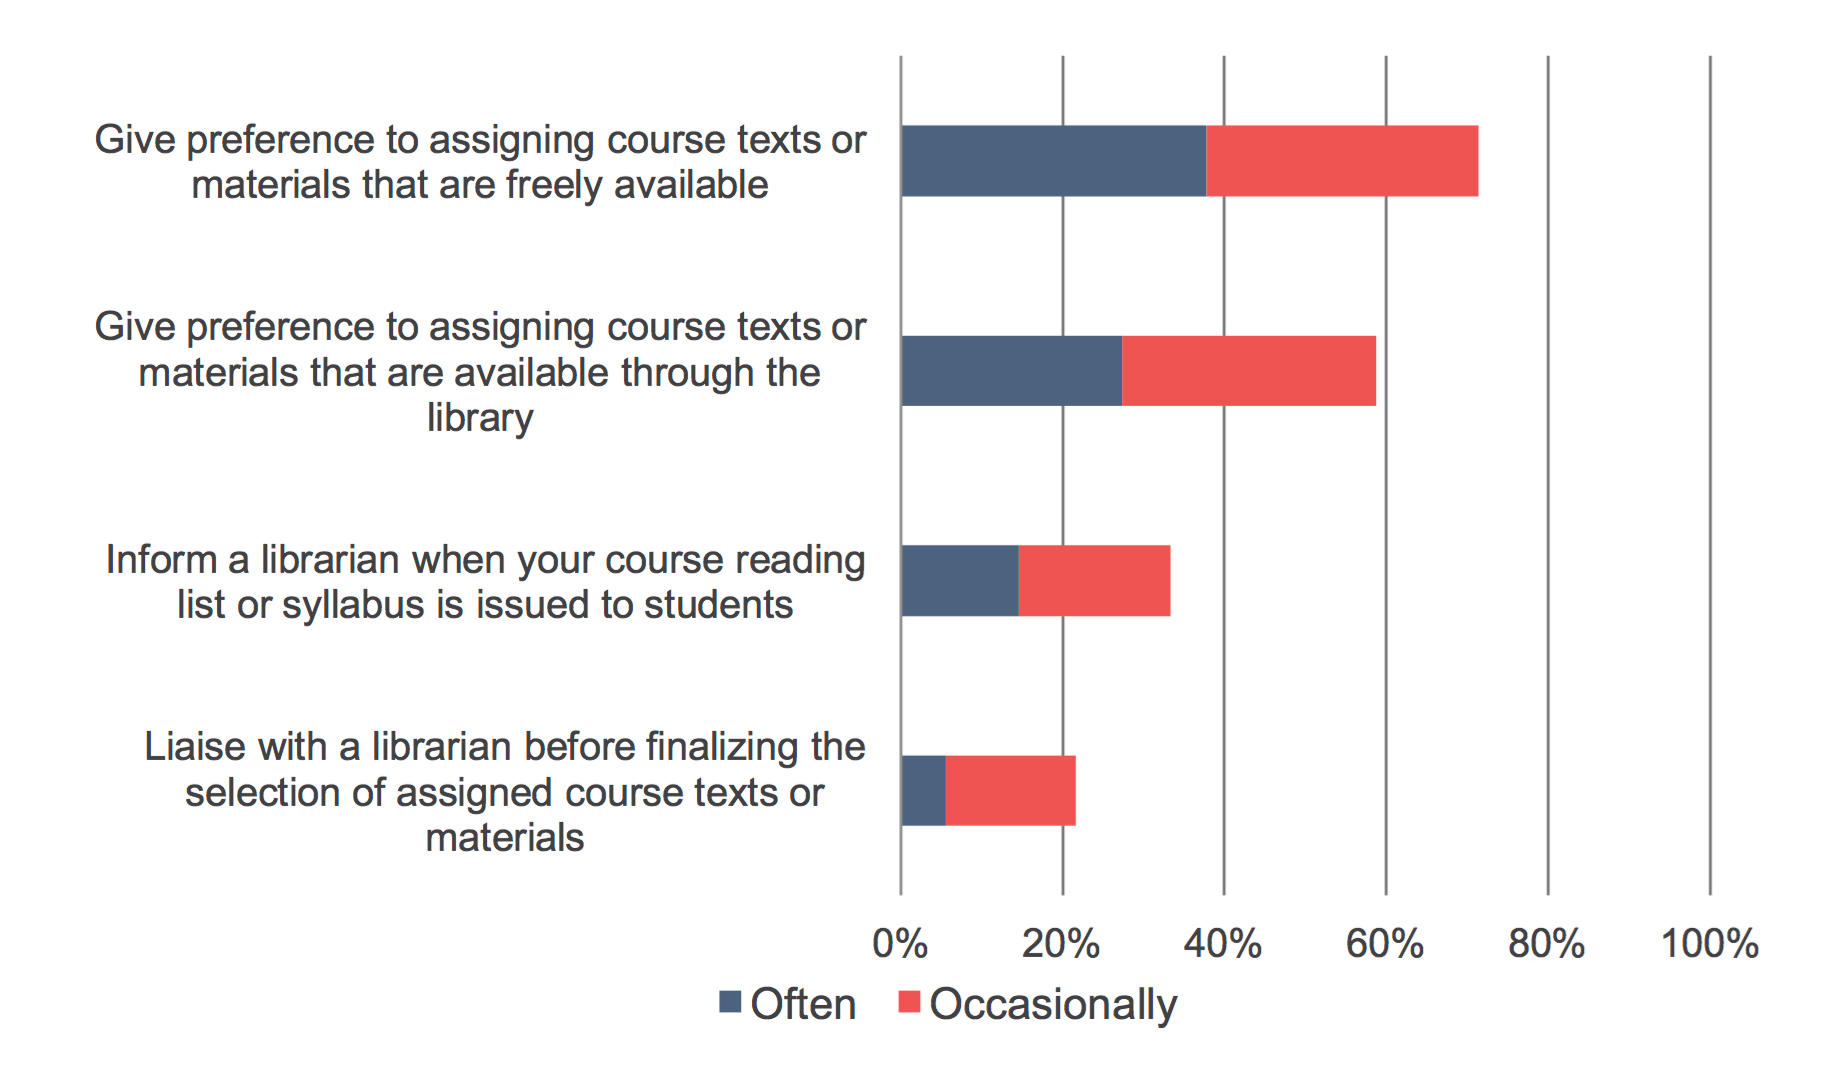 Does it matter where you did your lower division coursework?